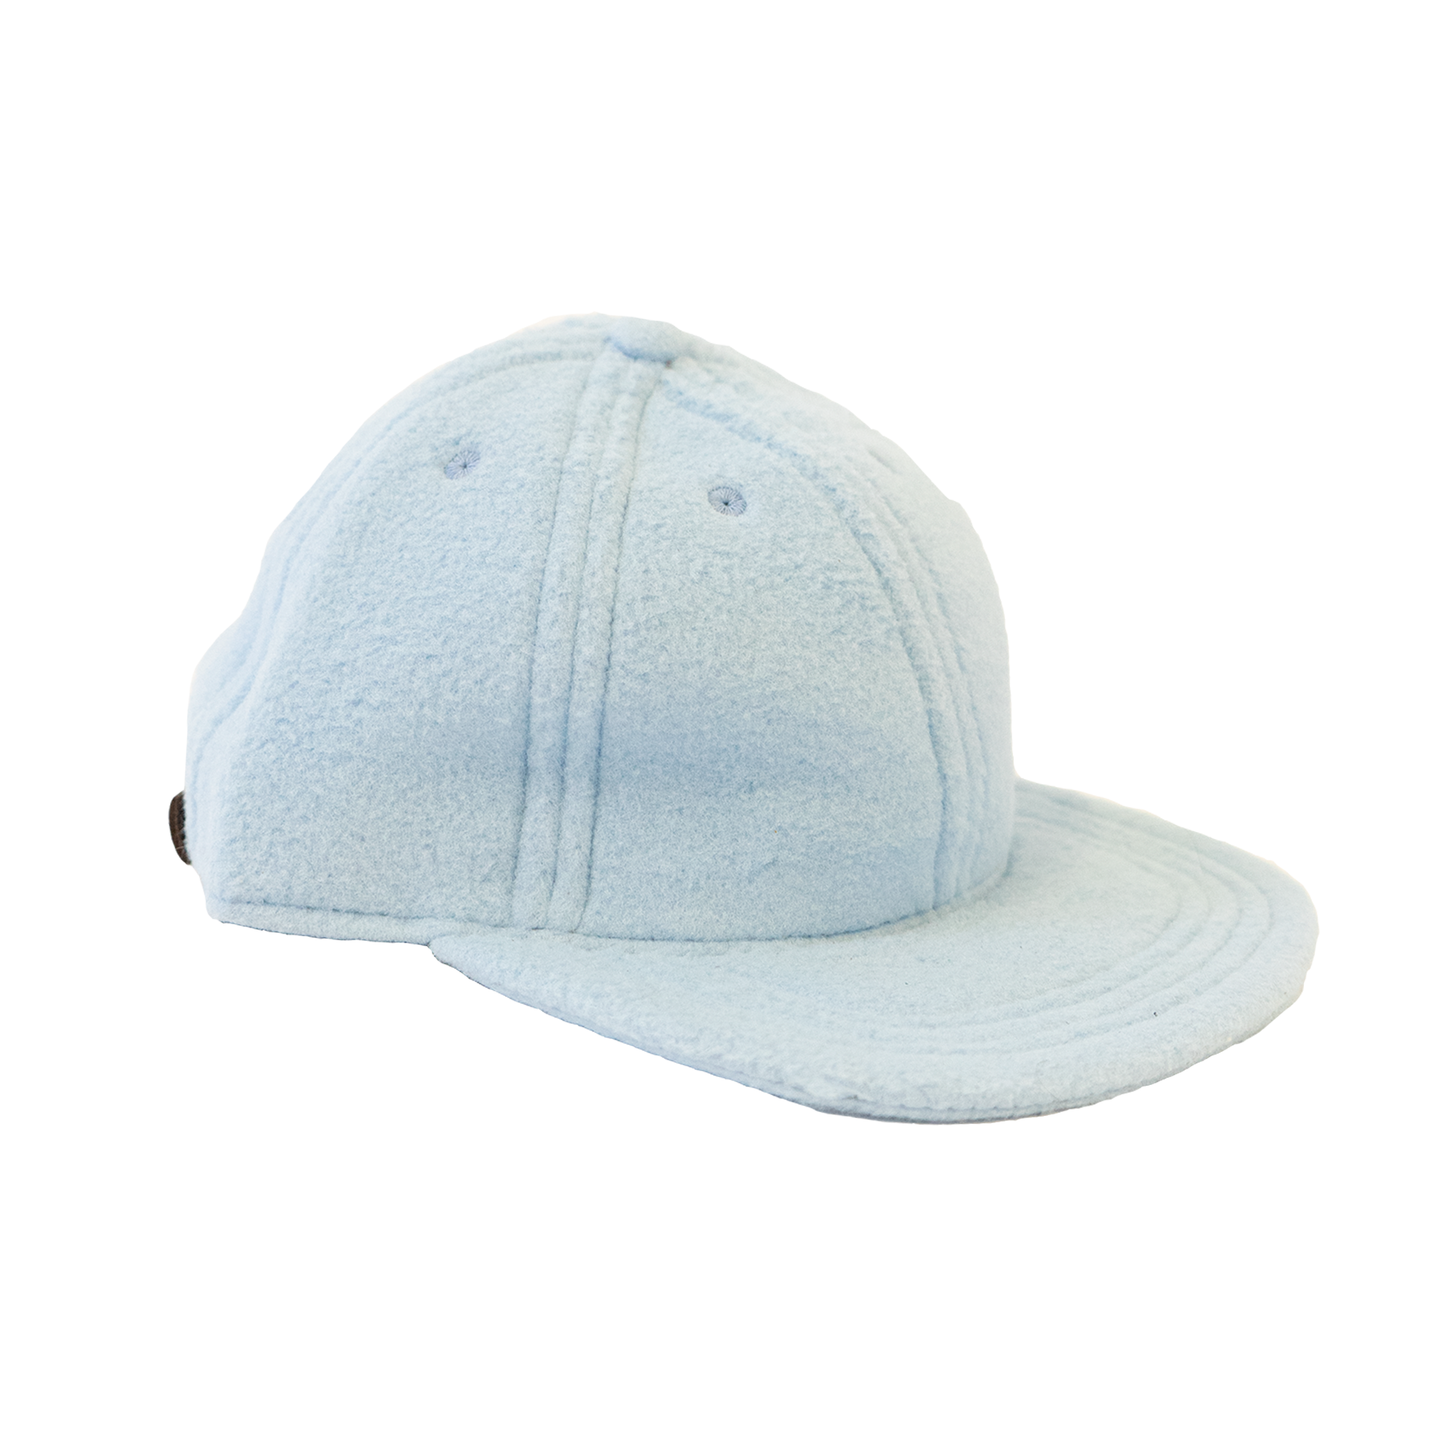 Adjustable Cap in Powder Blue Polartec Fleece